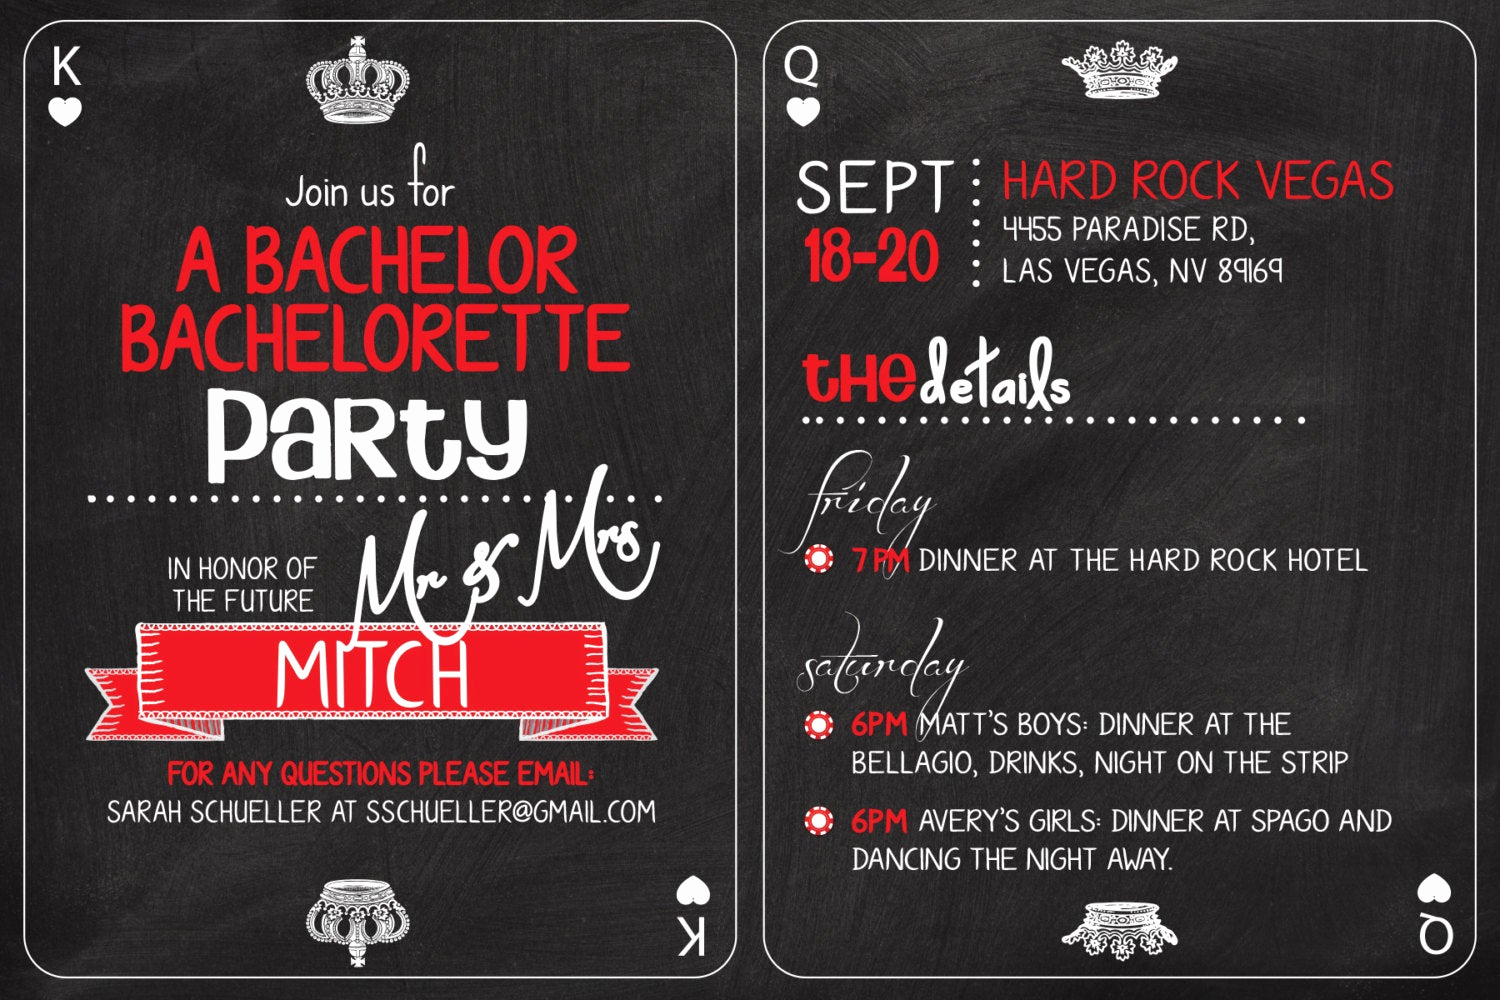 Bachelorette Party Invitation Wording Best Of Vegas Casino themed Bachelor Bachelorette Party Invitation